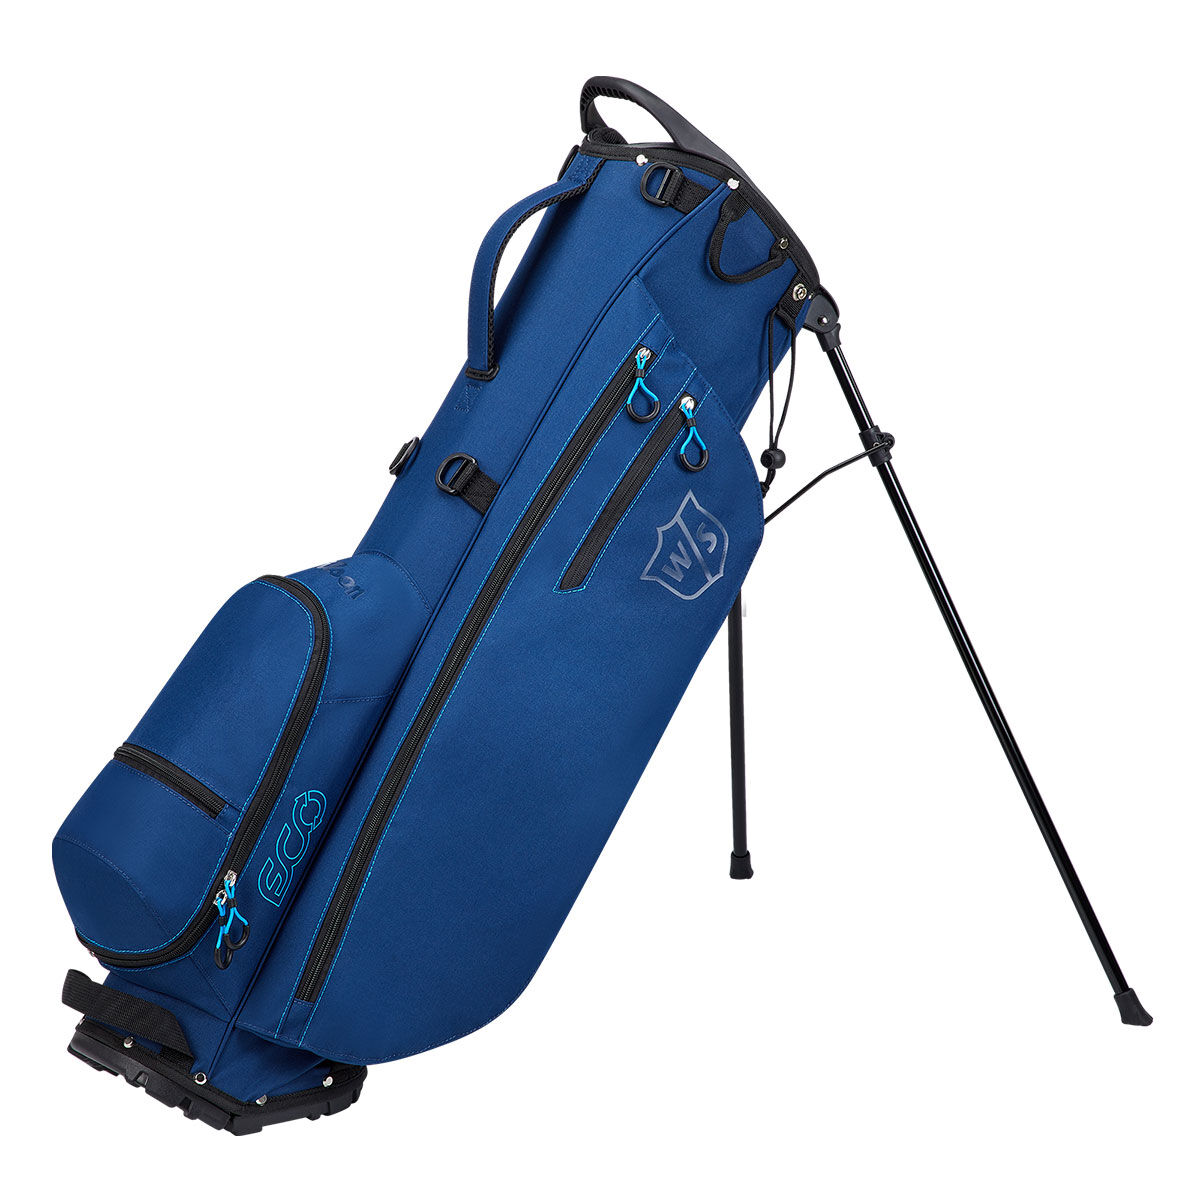 Wilson Staff ECO Carry Bag, Male, Blue, One Size | American Golf